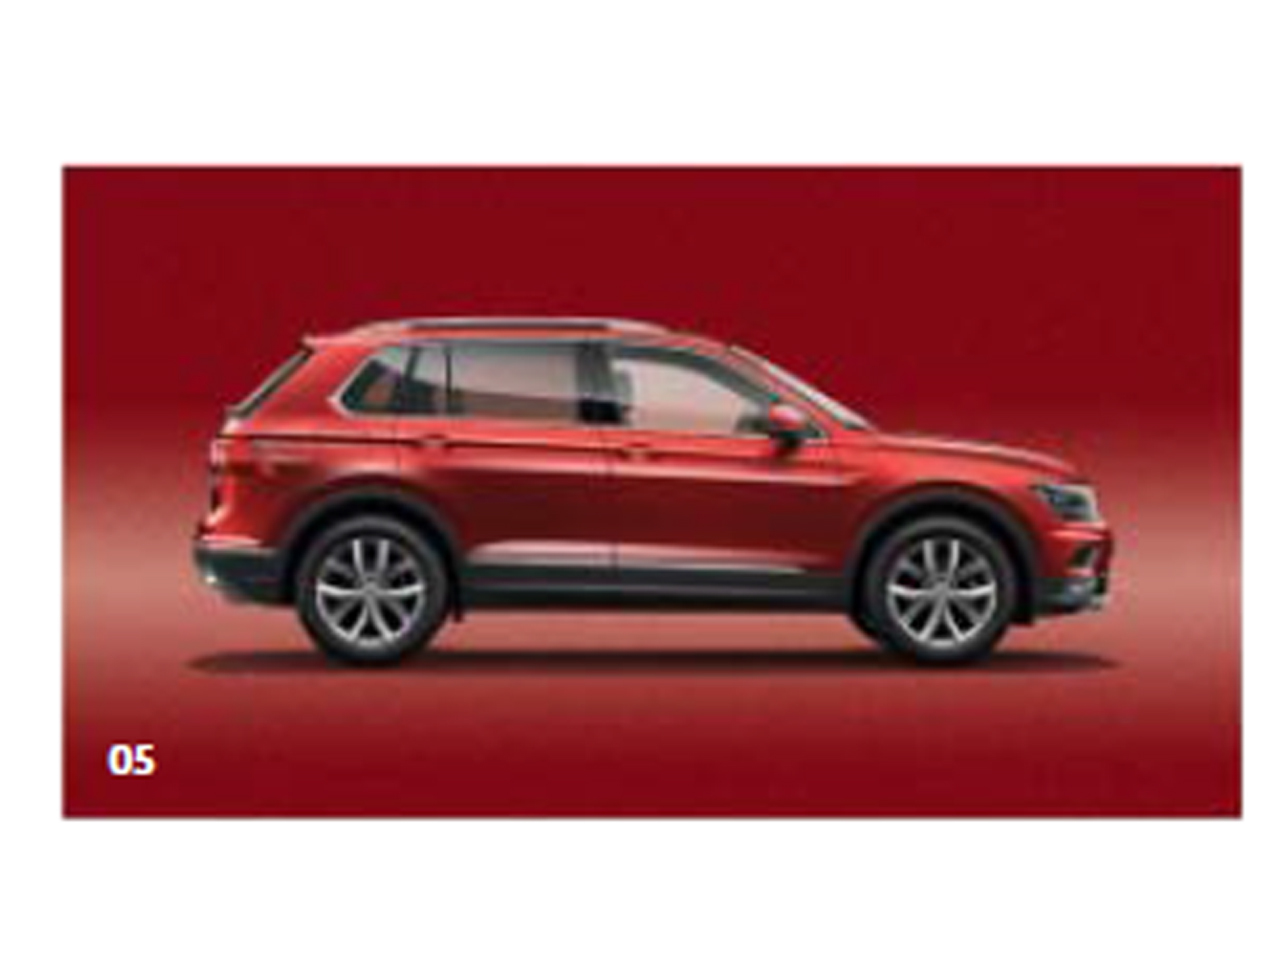 volkswagen tiguan 2016 fiches techniques configurateur et prix photo 10 l 39 argus. Black Bedroom Furniture Sets. Home Design Ideas